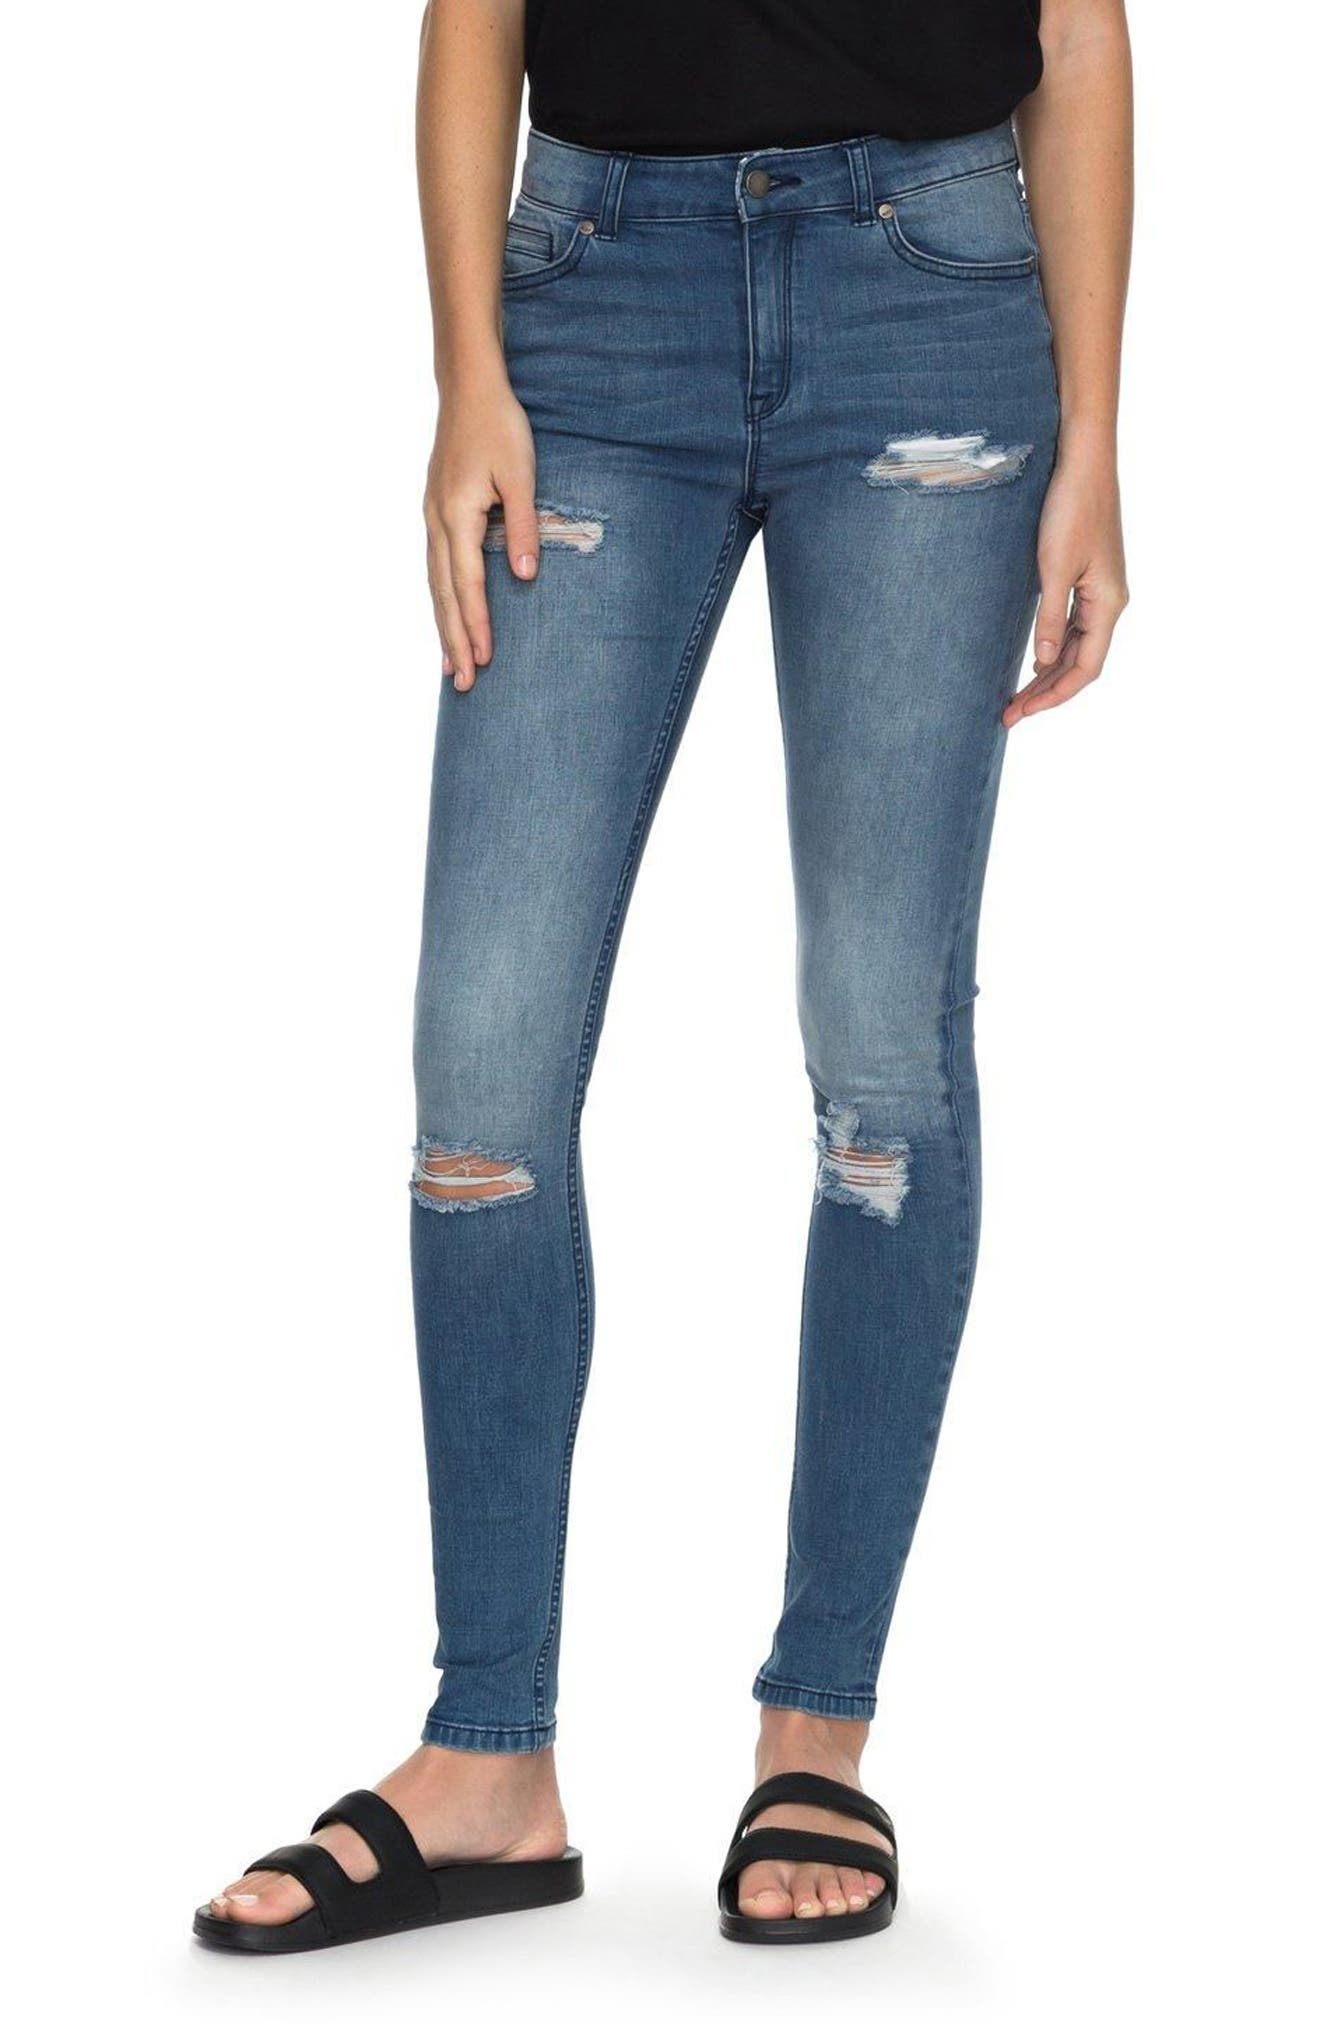 Roxy Just the Good Day Distressed Skinny Jeans